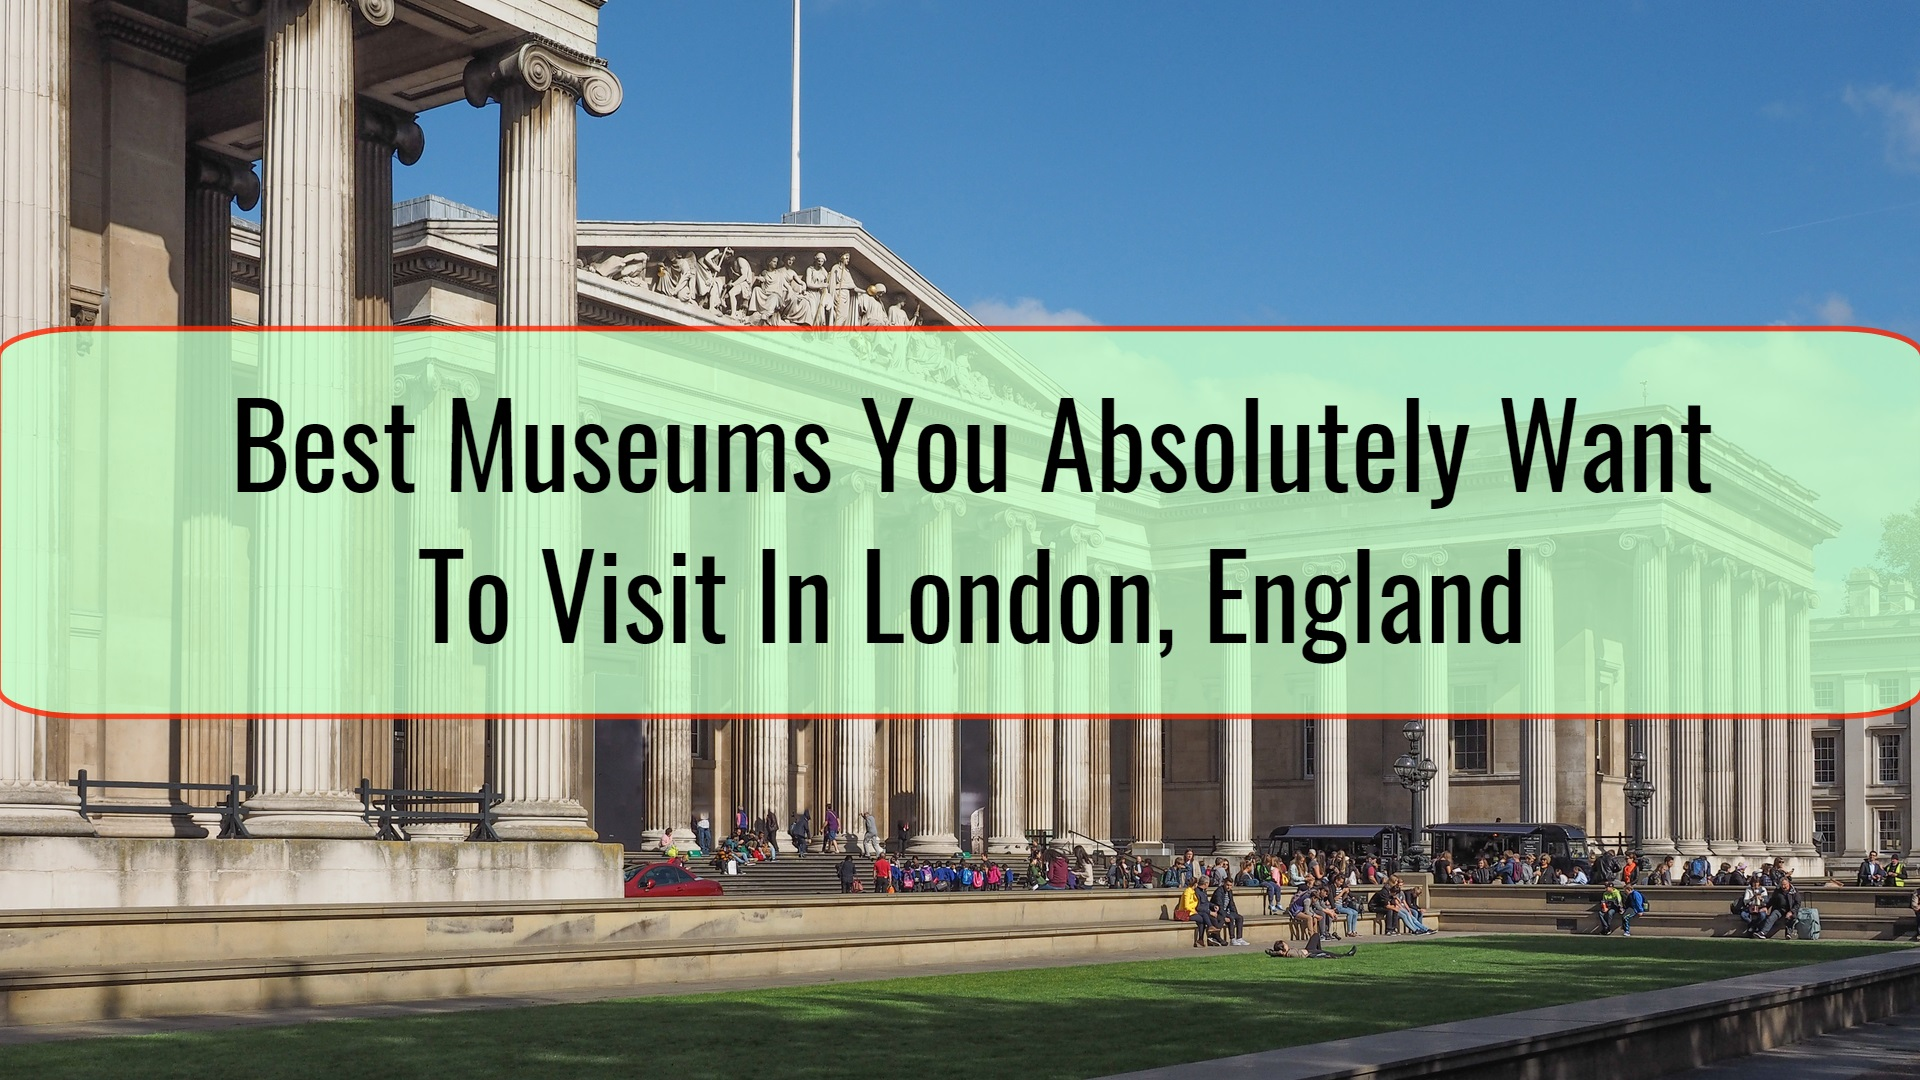 Best Museums You Absolutely Want To Visit In London, England